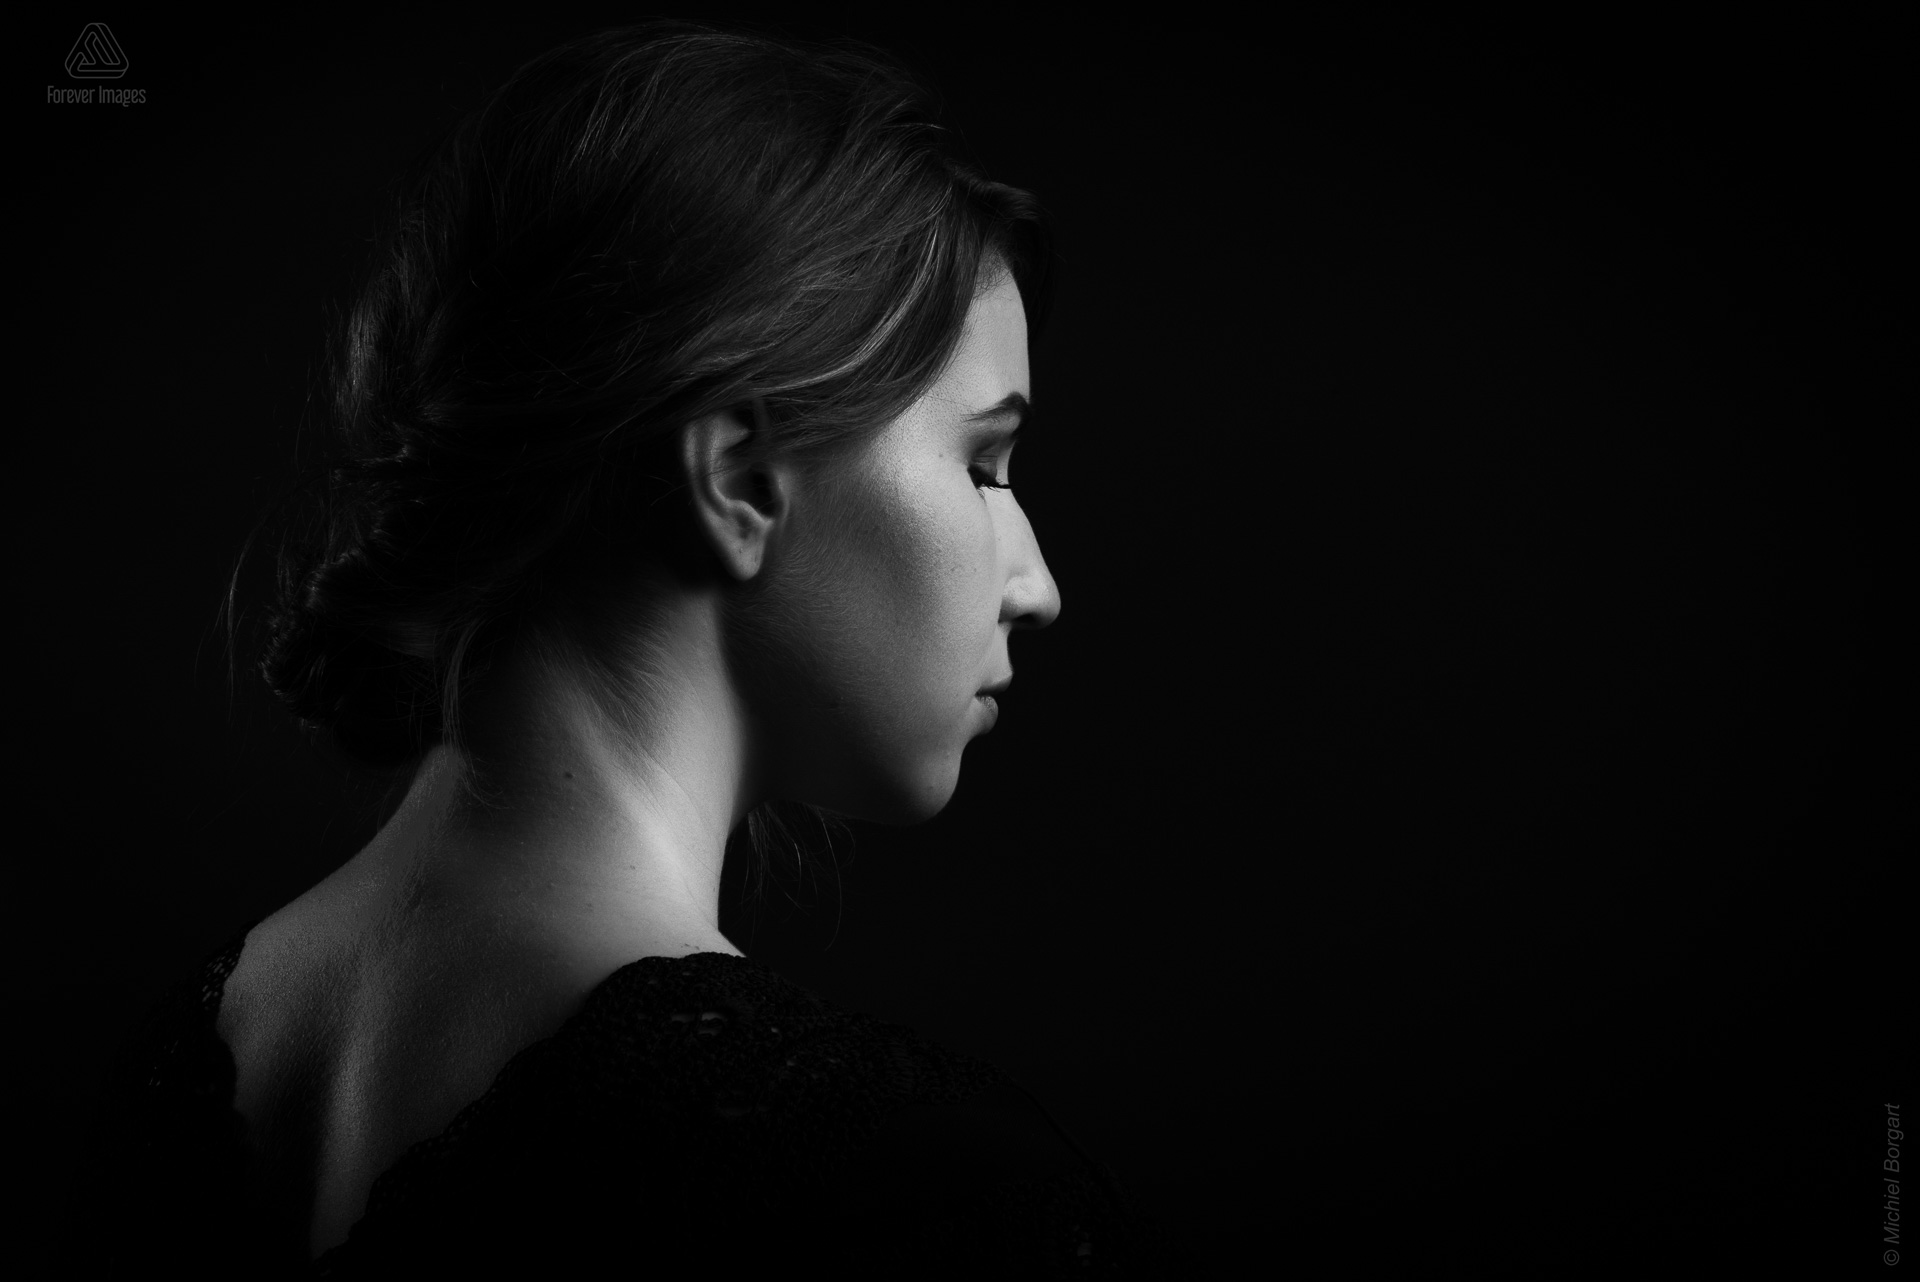 Portrait photo black and white young lady looking sideways serene peaceful low key | Noah Doornebal | Portrait Photographer Michiel Borgart - Forever Images.